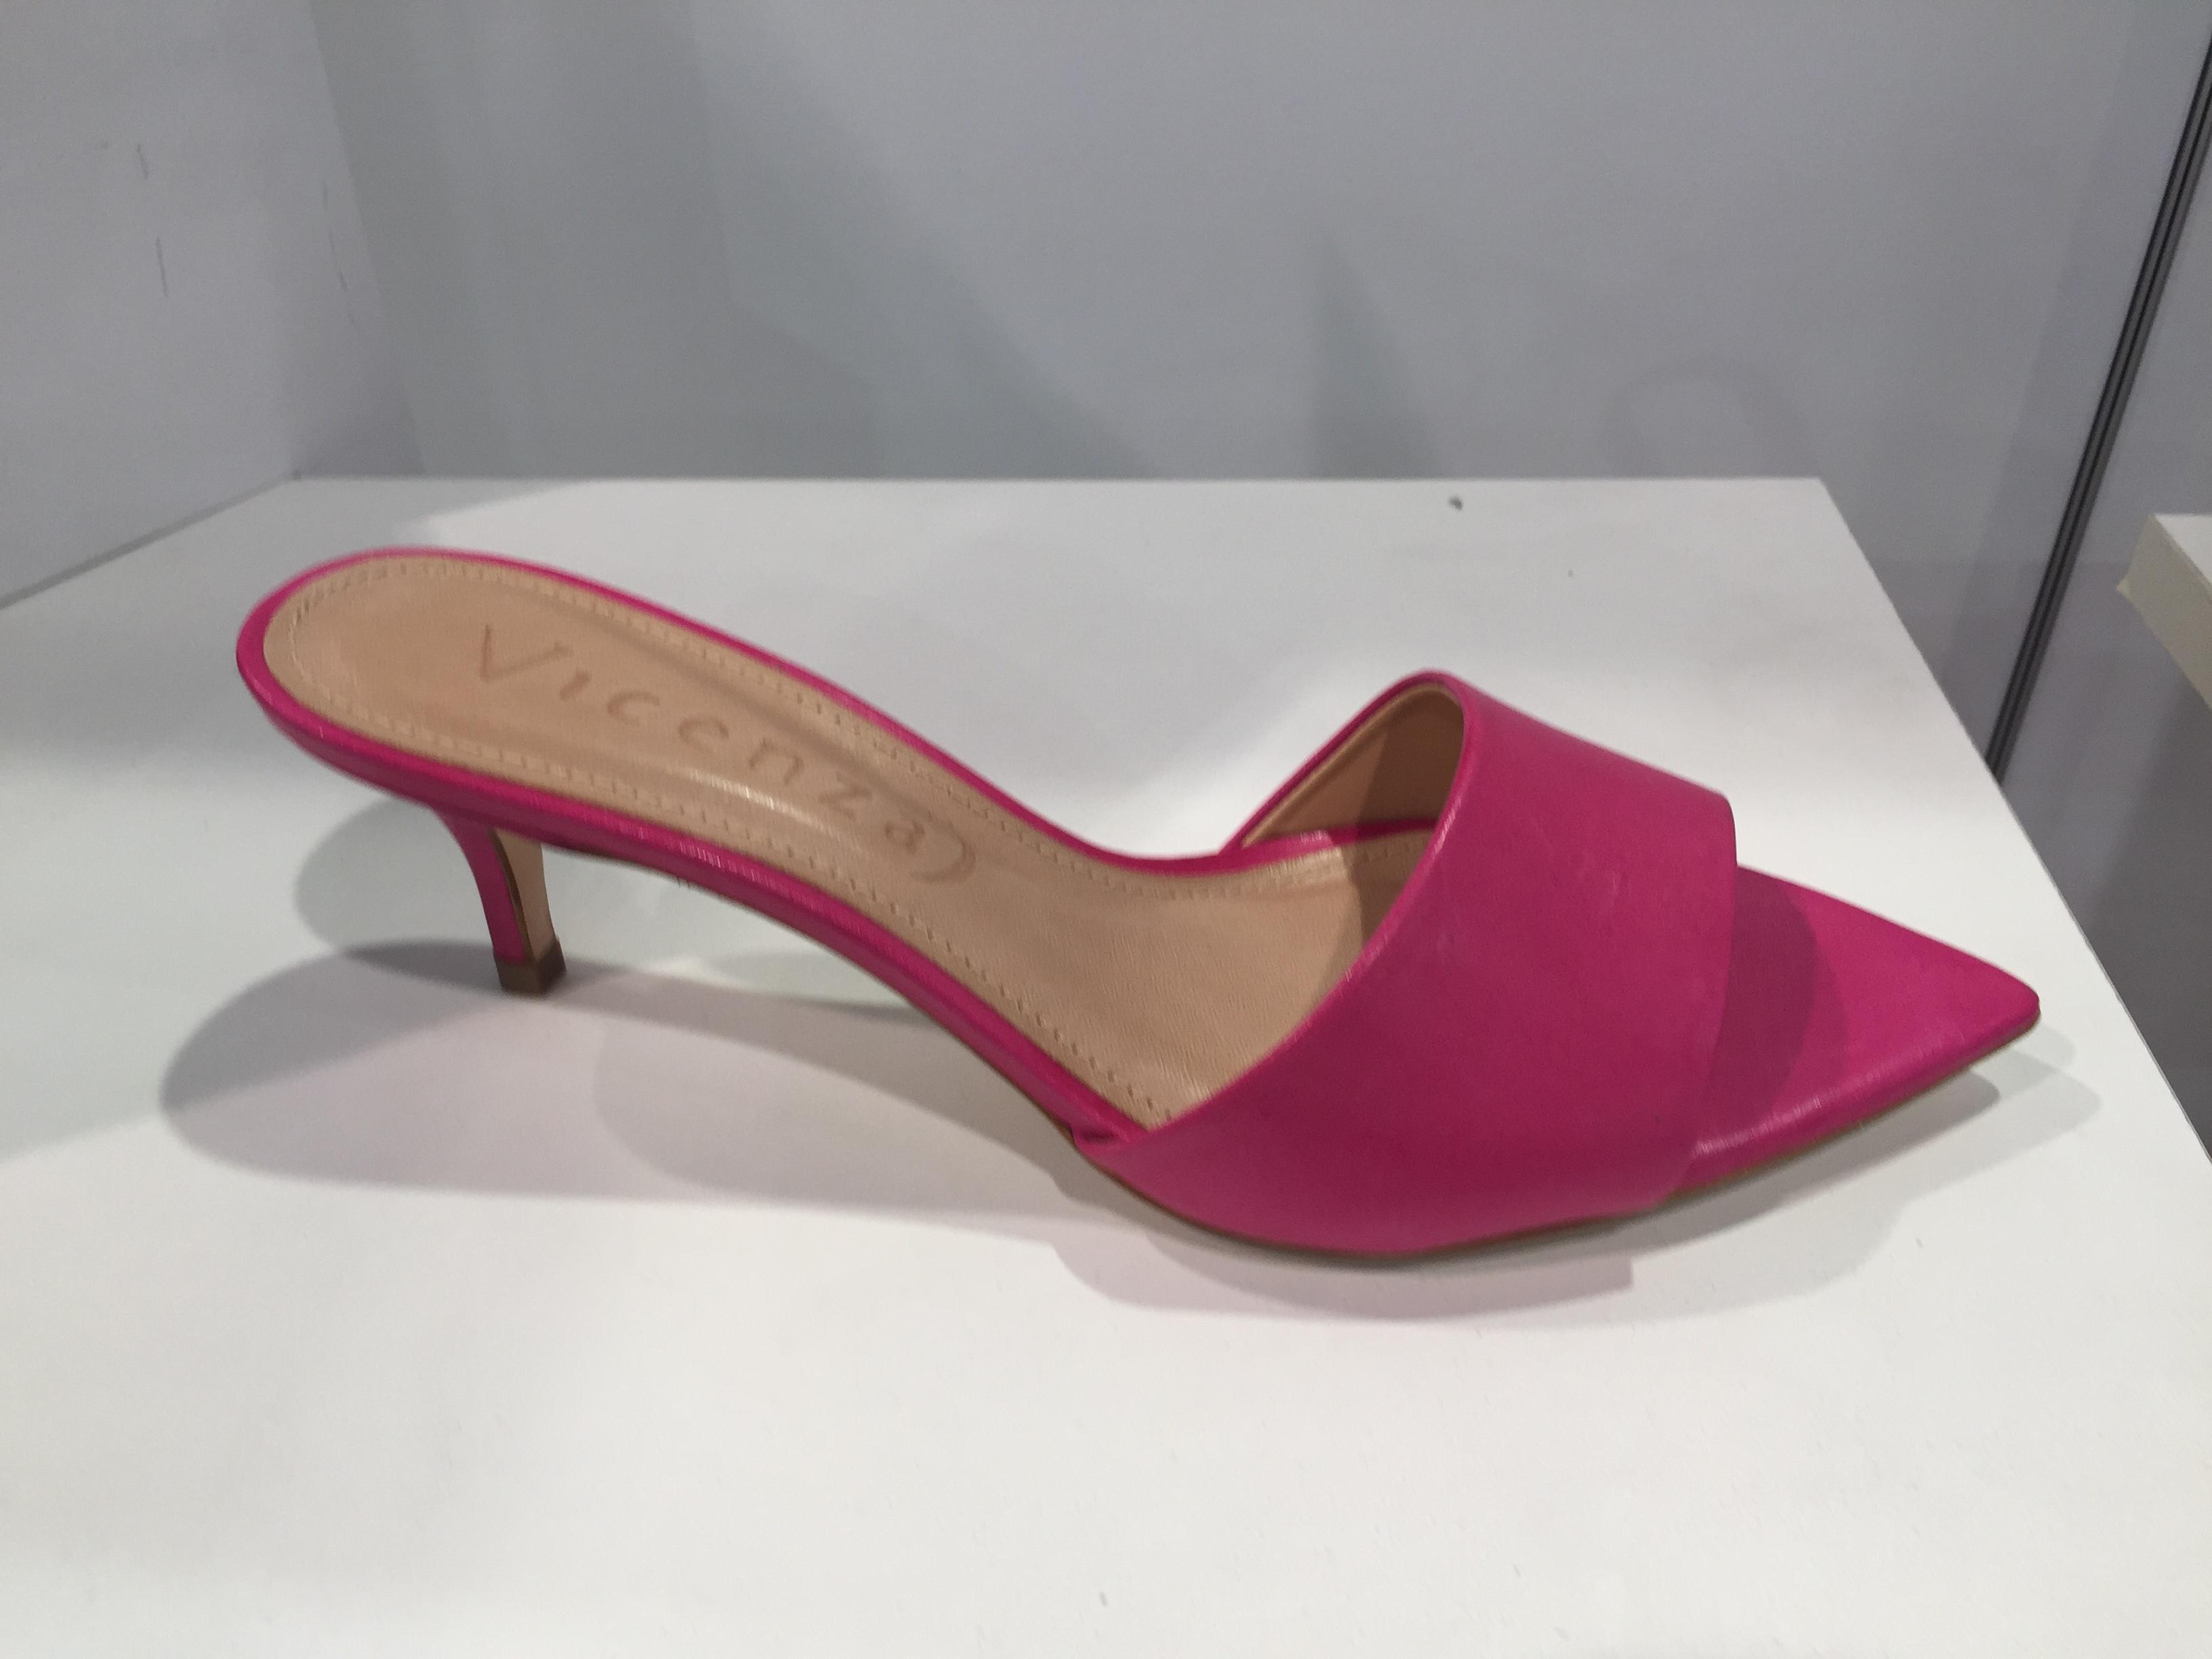 A pointed-toe slide sandal from Vicenza.